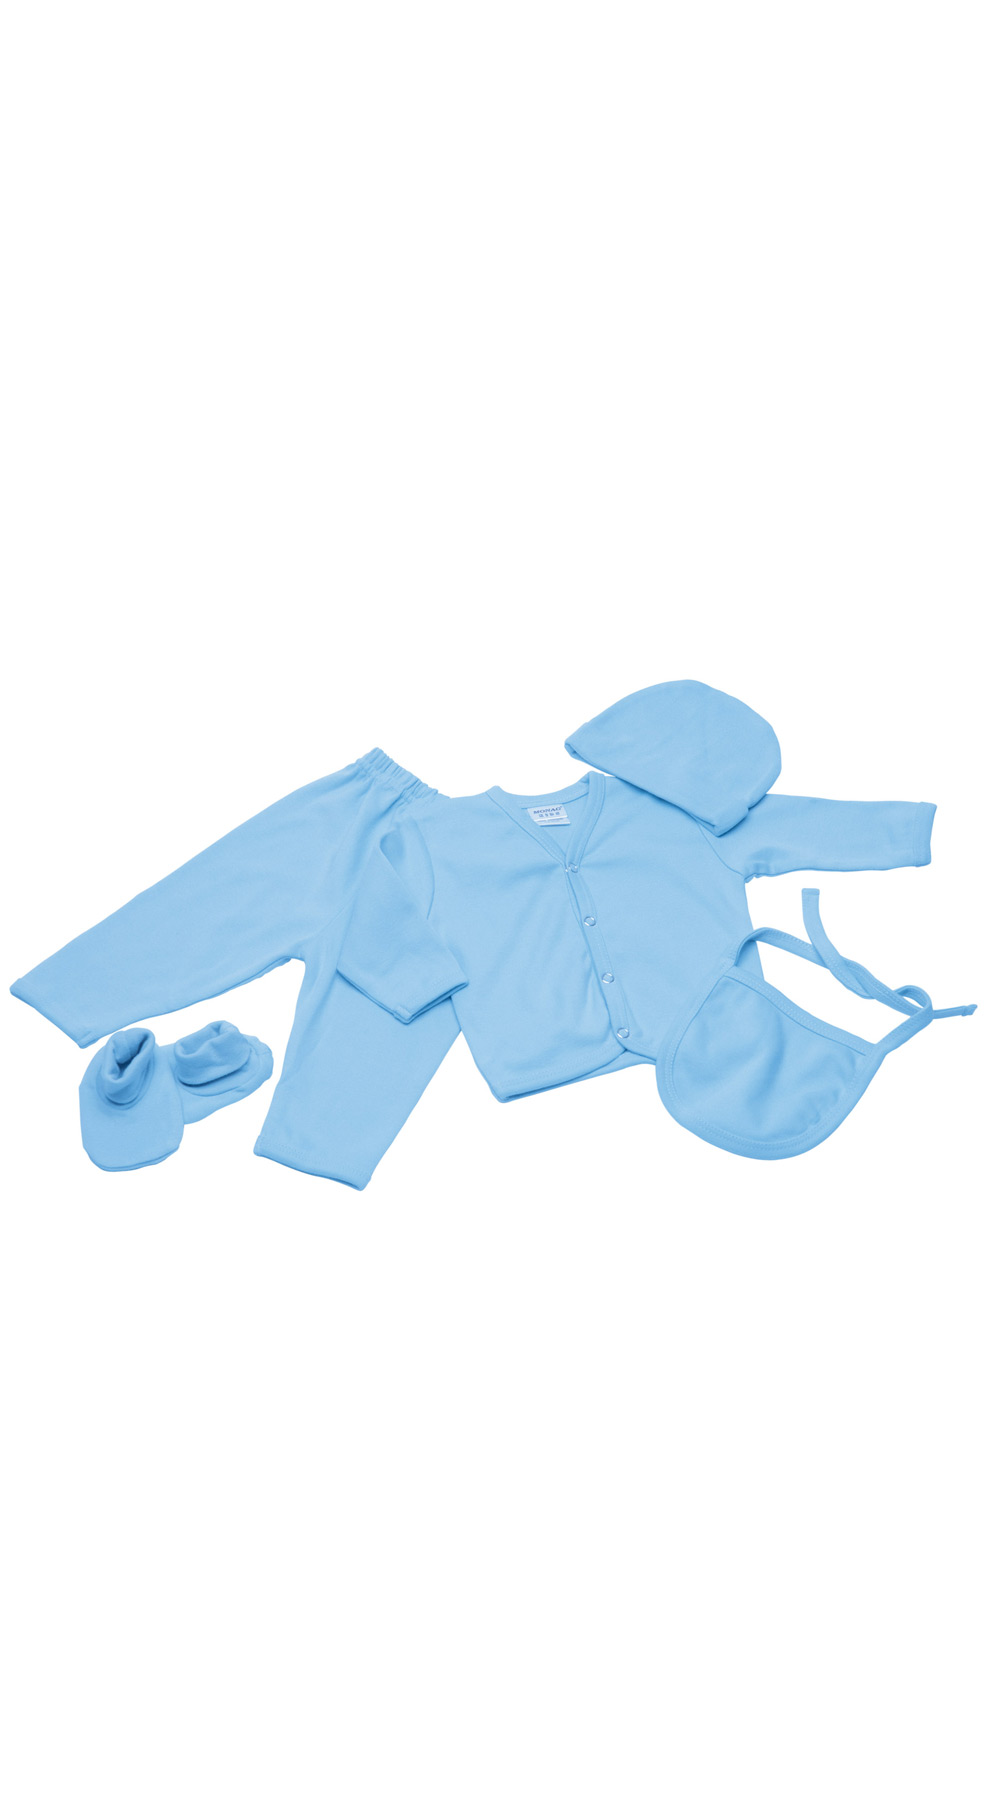 Monag 200100 - Interlock Baby Gift Set